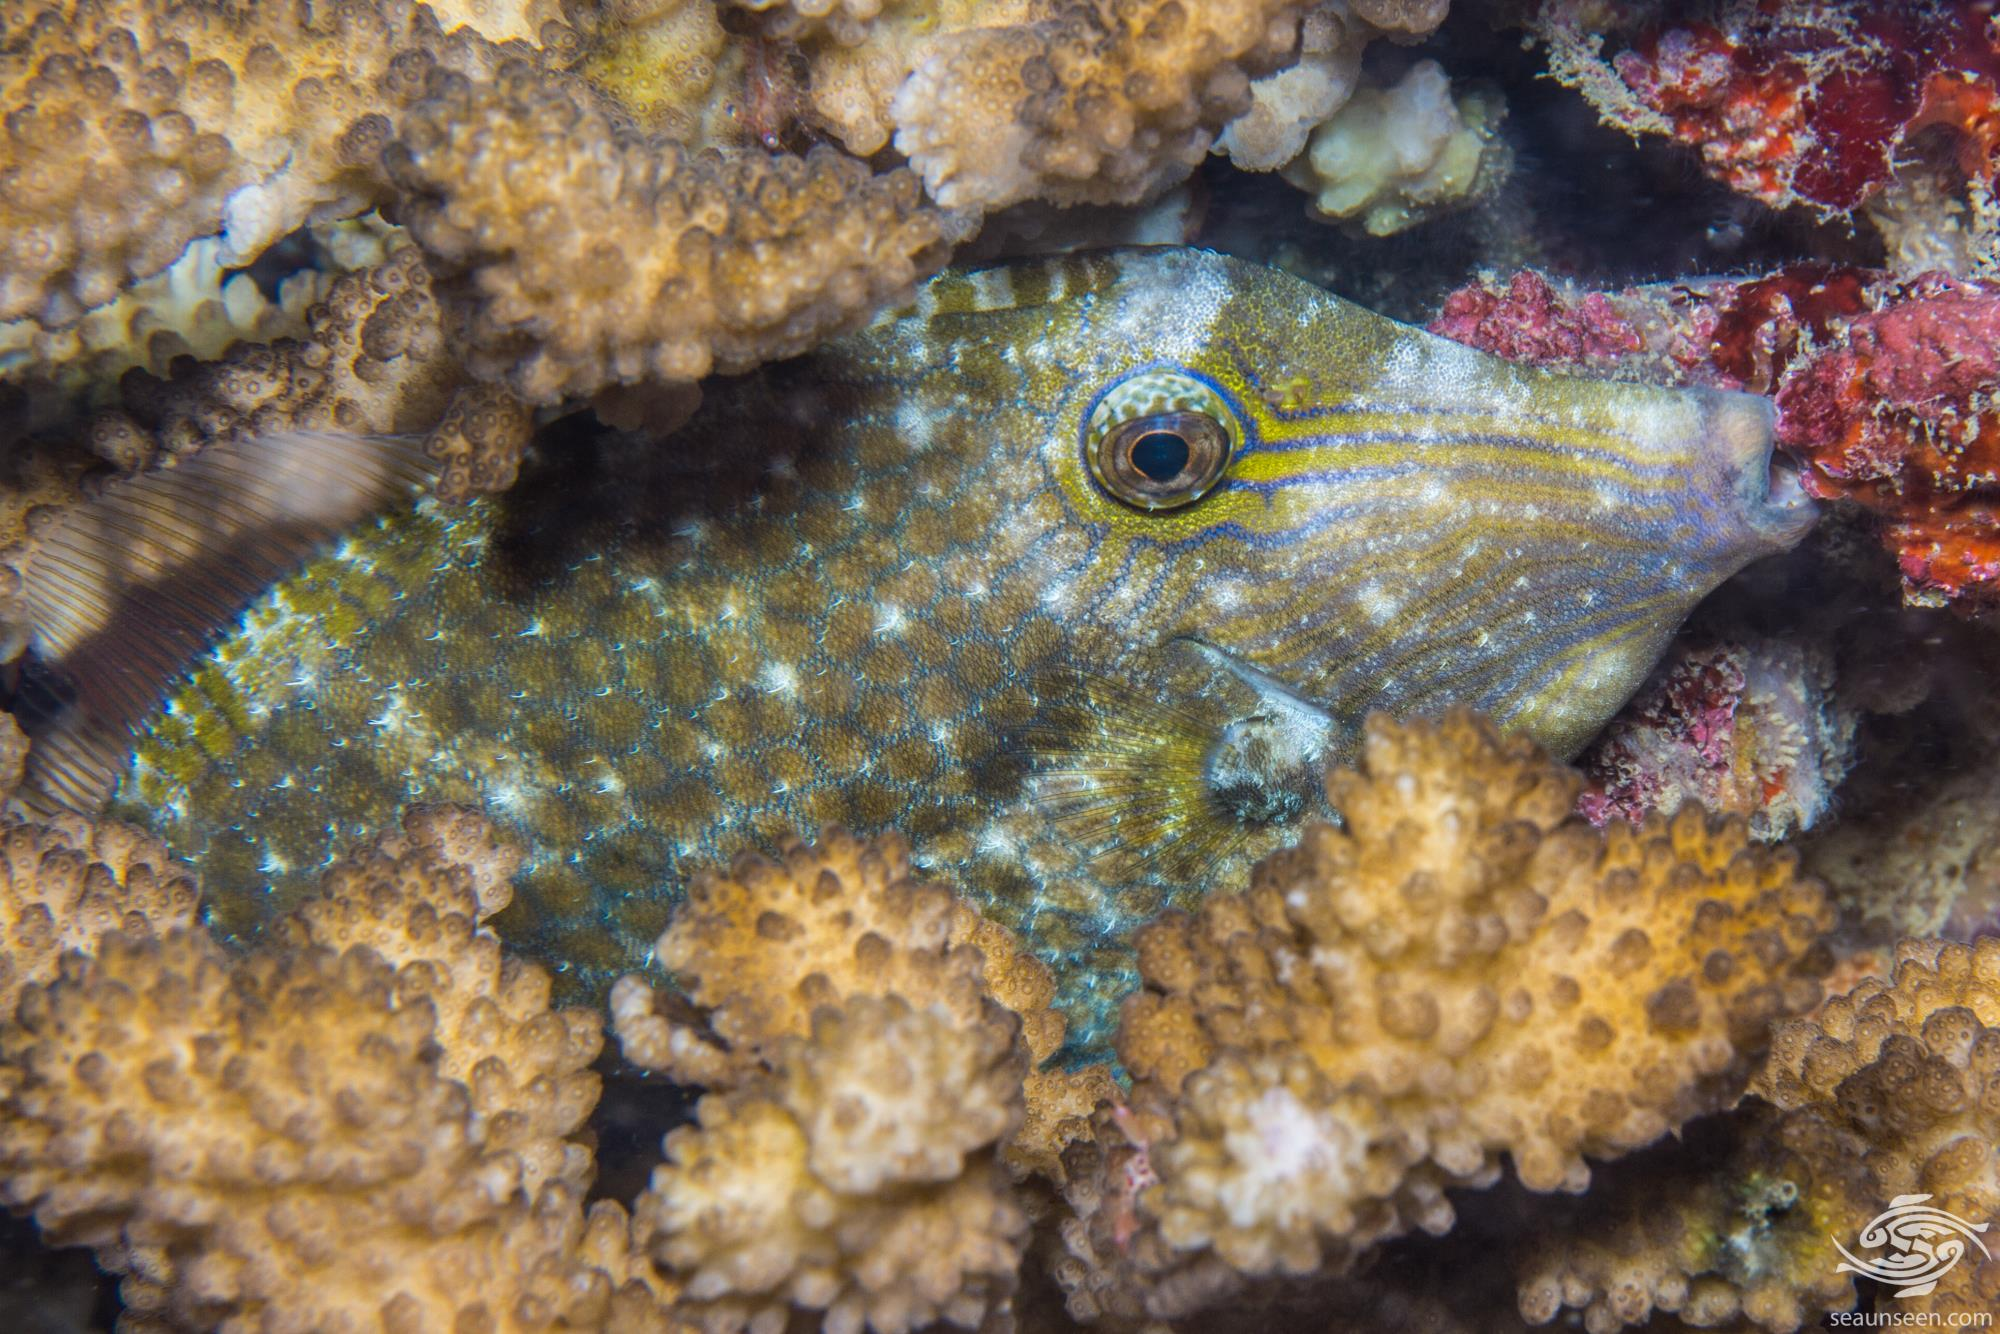 Honeycomb Filefish (Cantherhines pardalis)